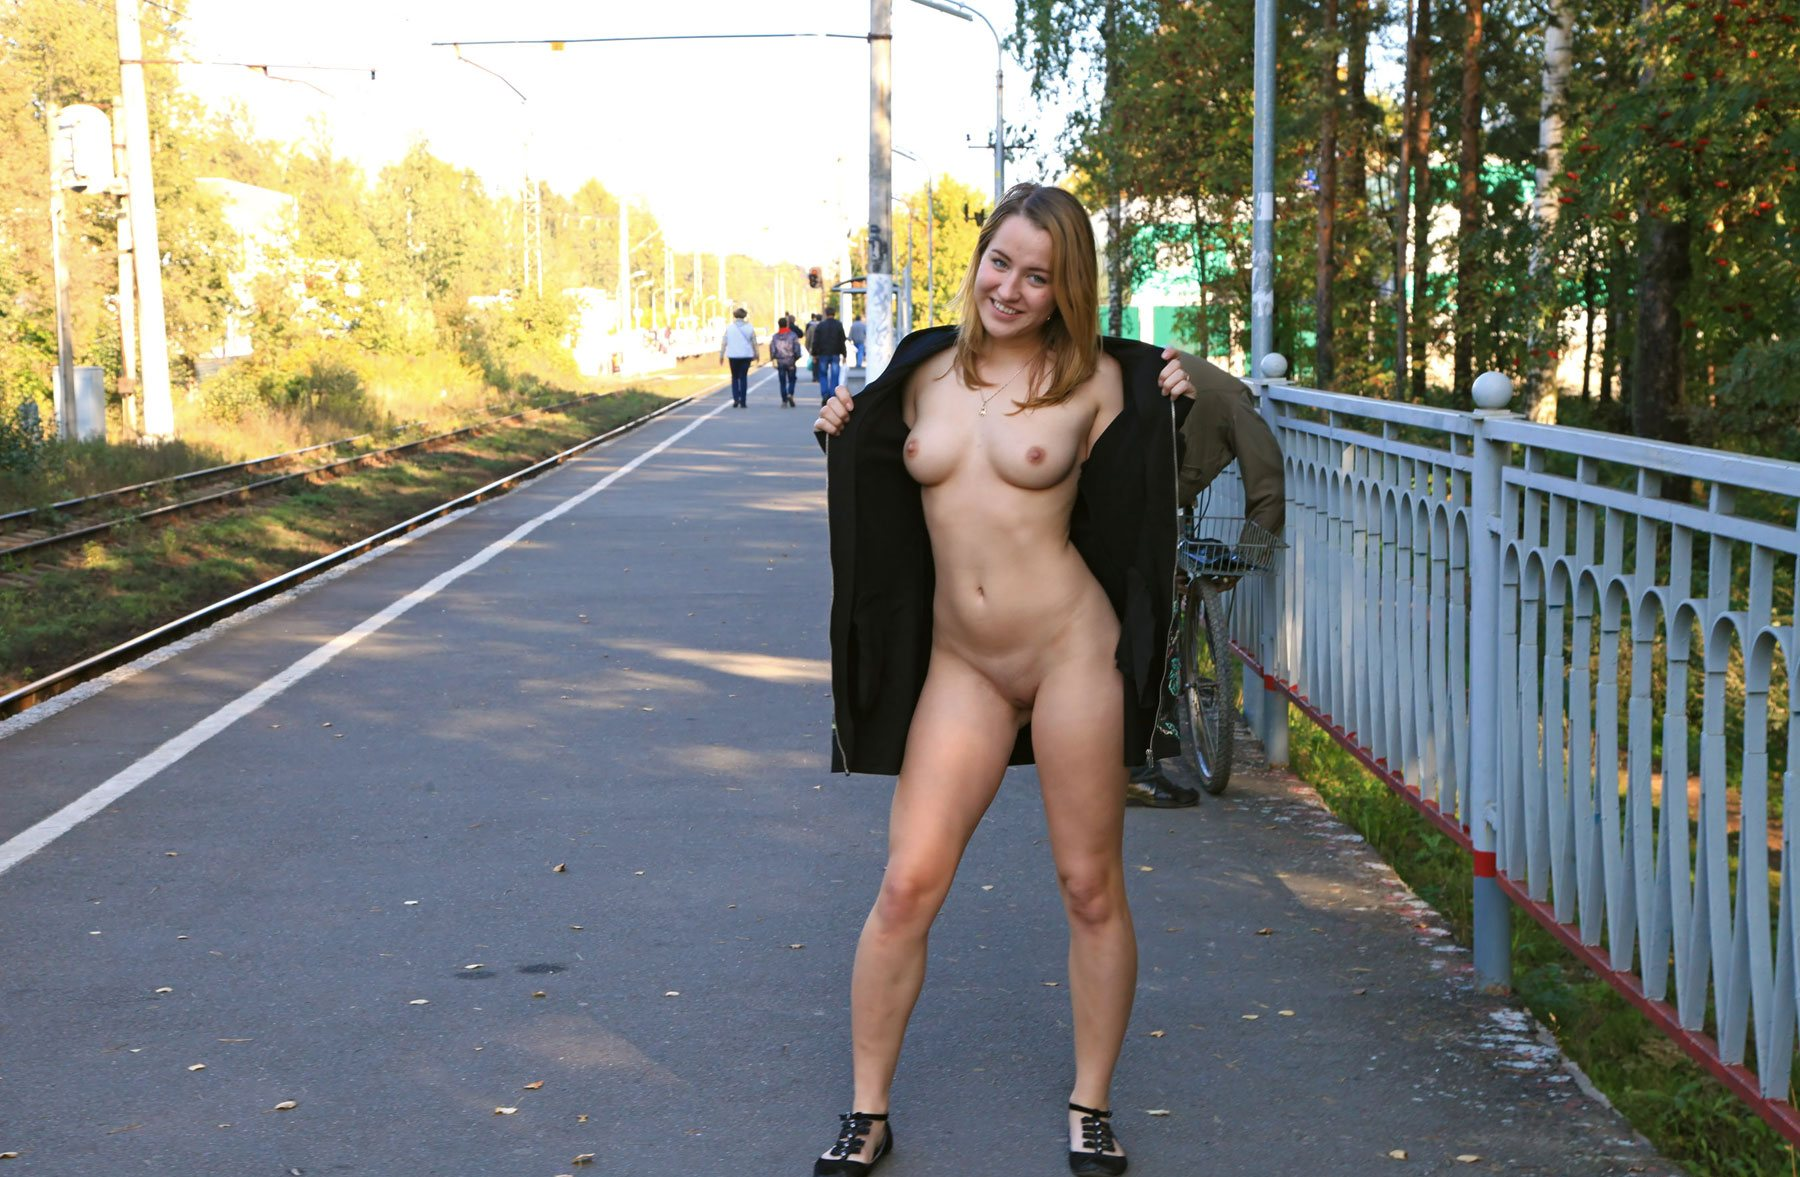 sexiest girl almost nude photos